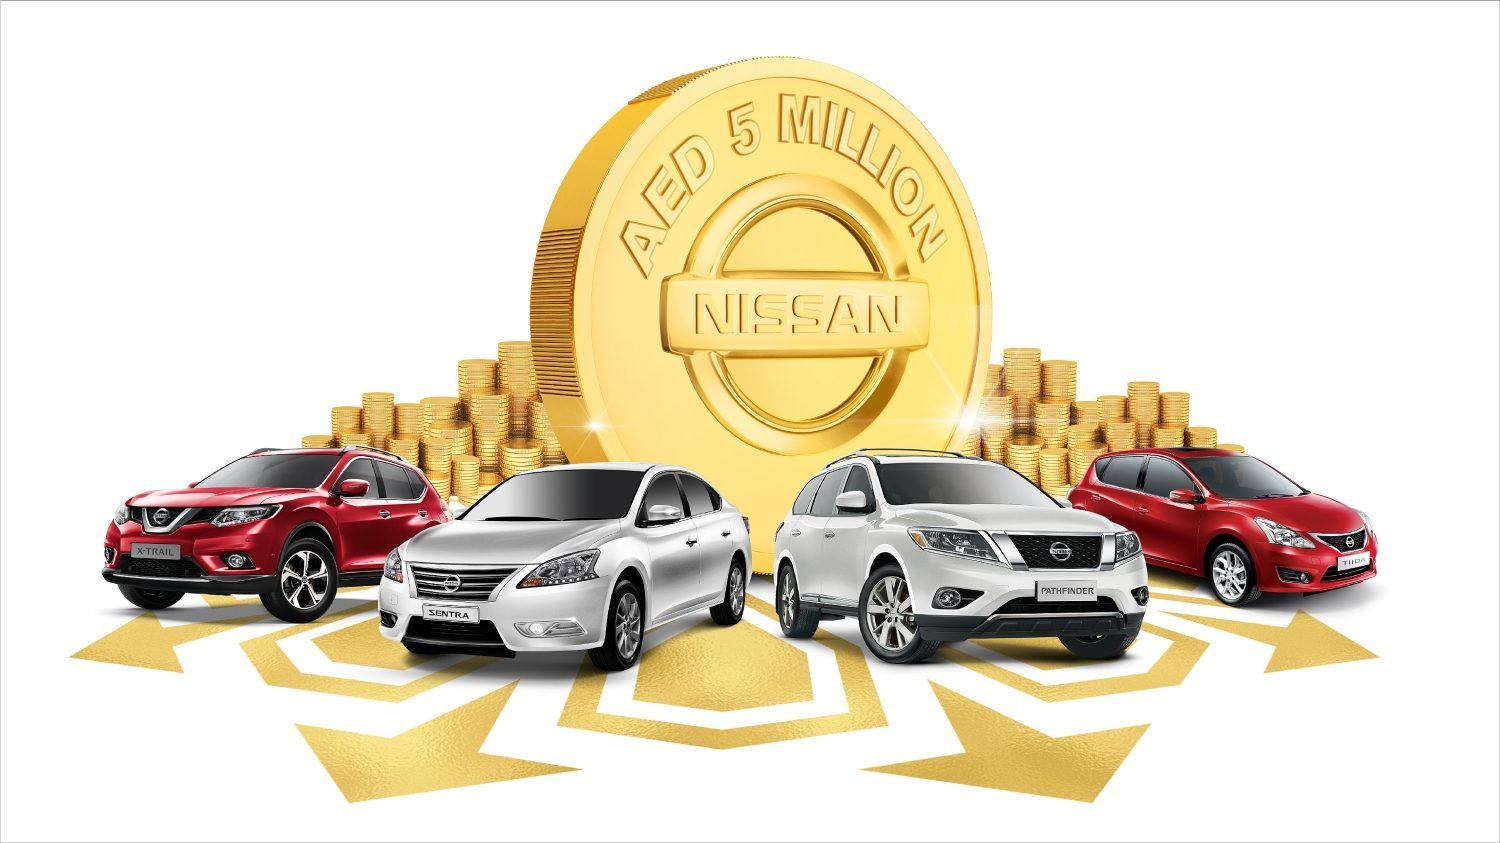 Arabian Automobiles Company celebrates generosity during the Holy Month